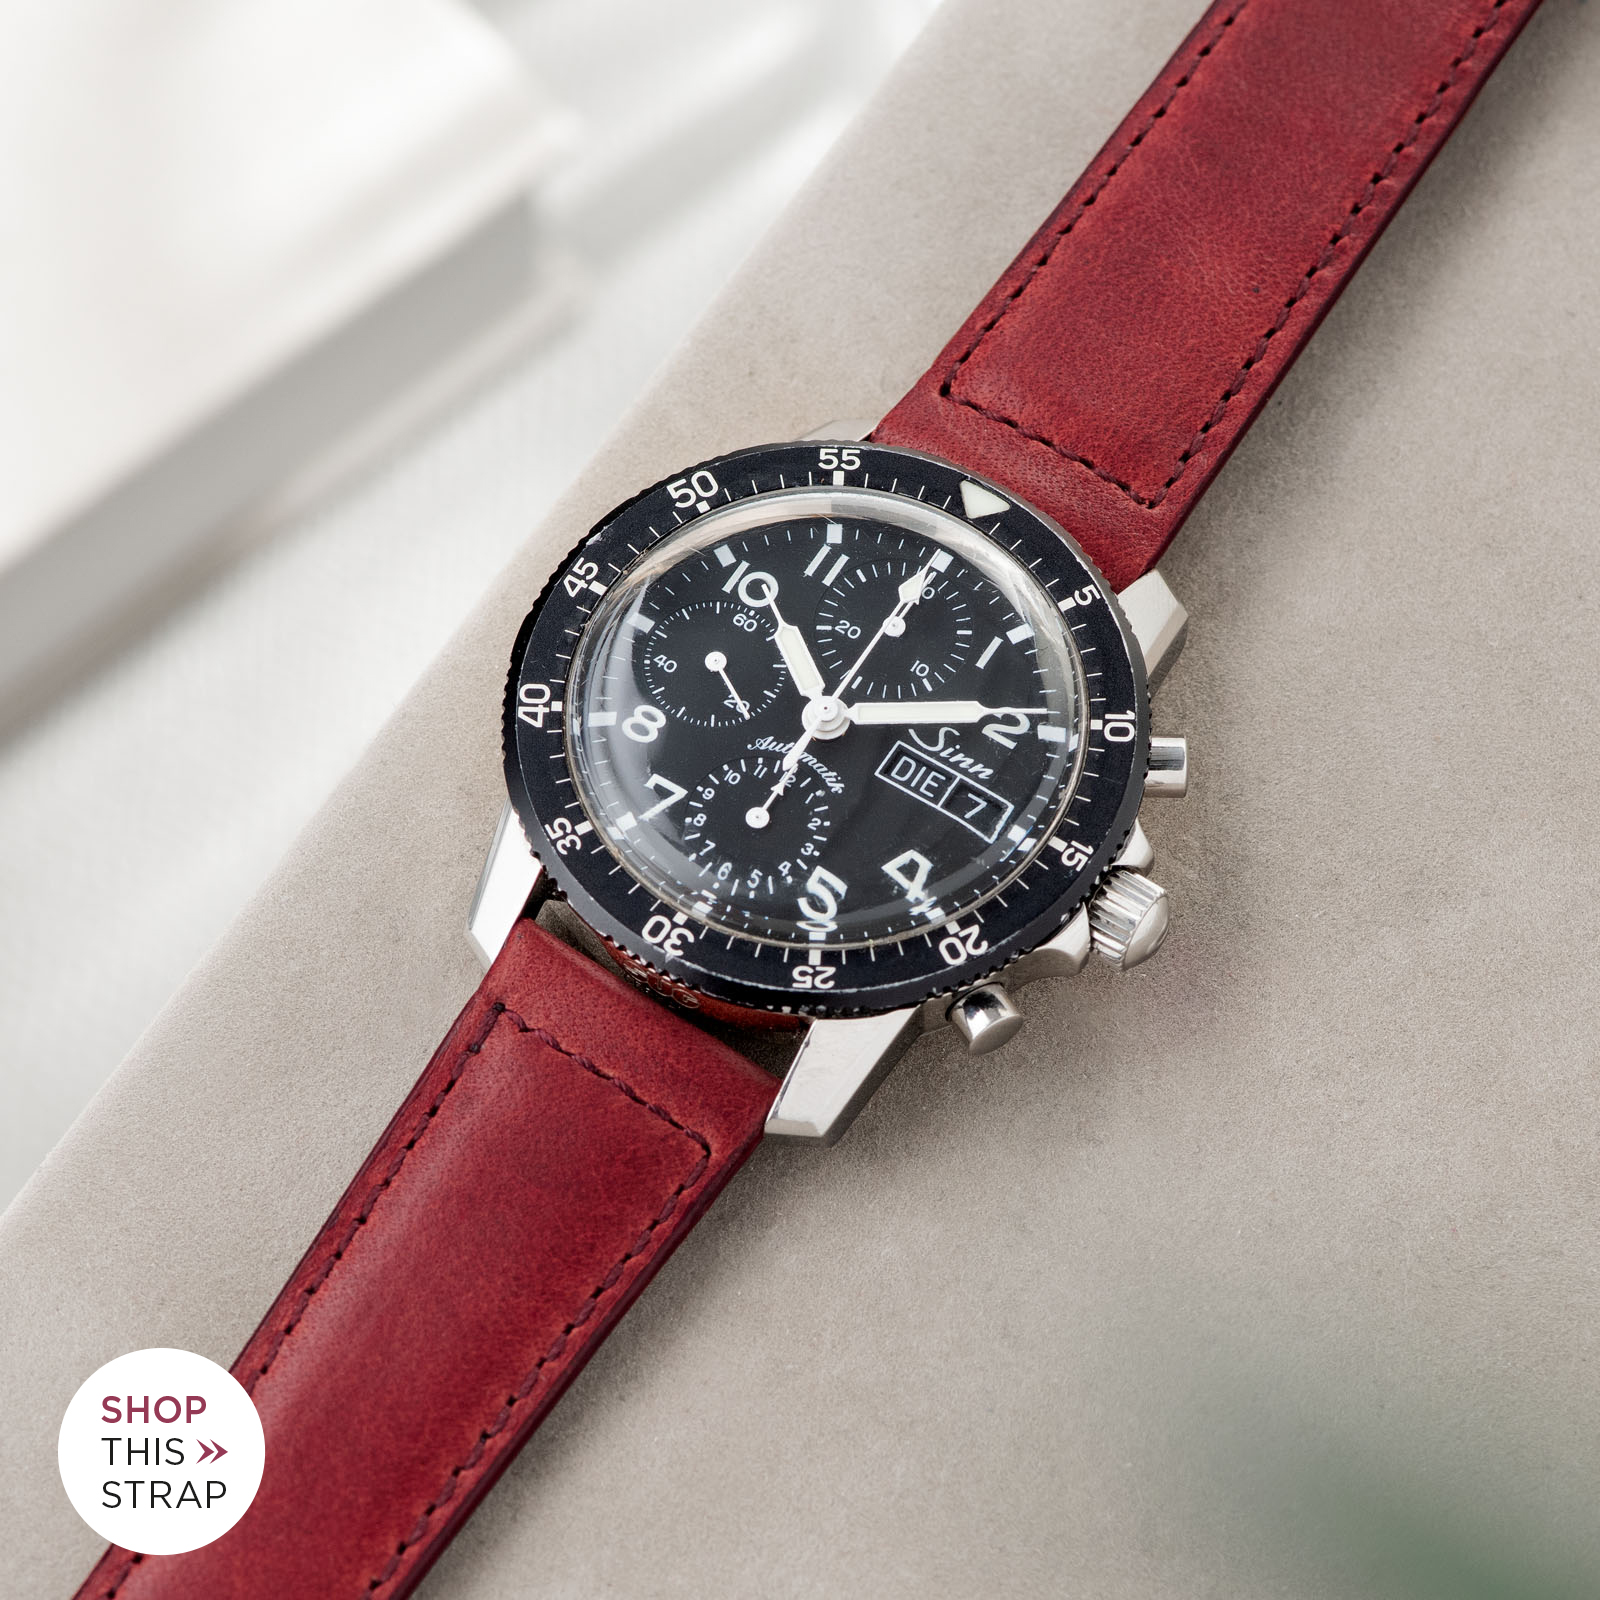 Bulang and Sons_Strap Guide_Sinn 103_Chimney Red Leather Watch Strap